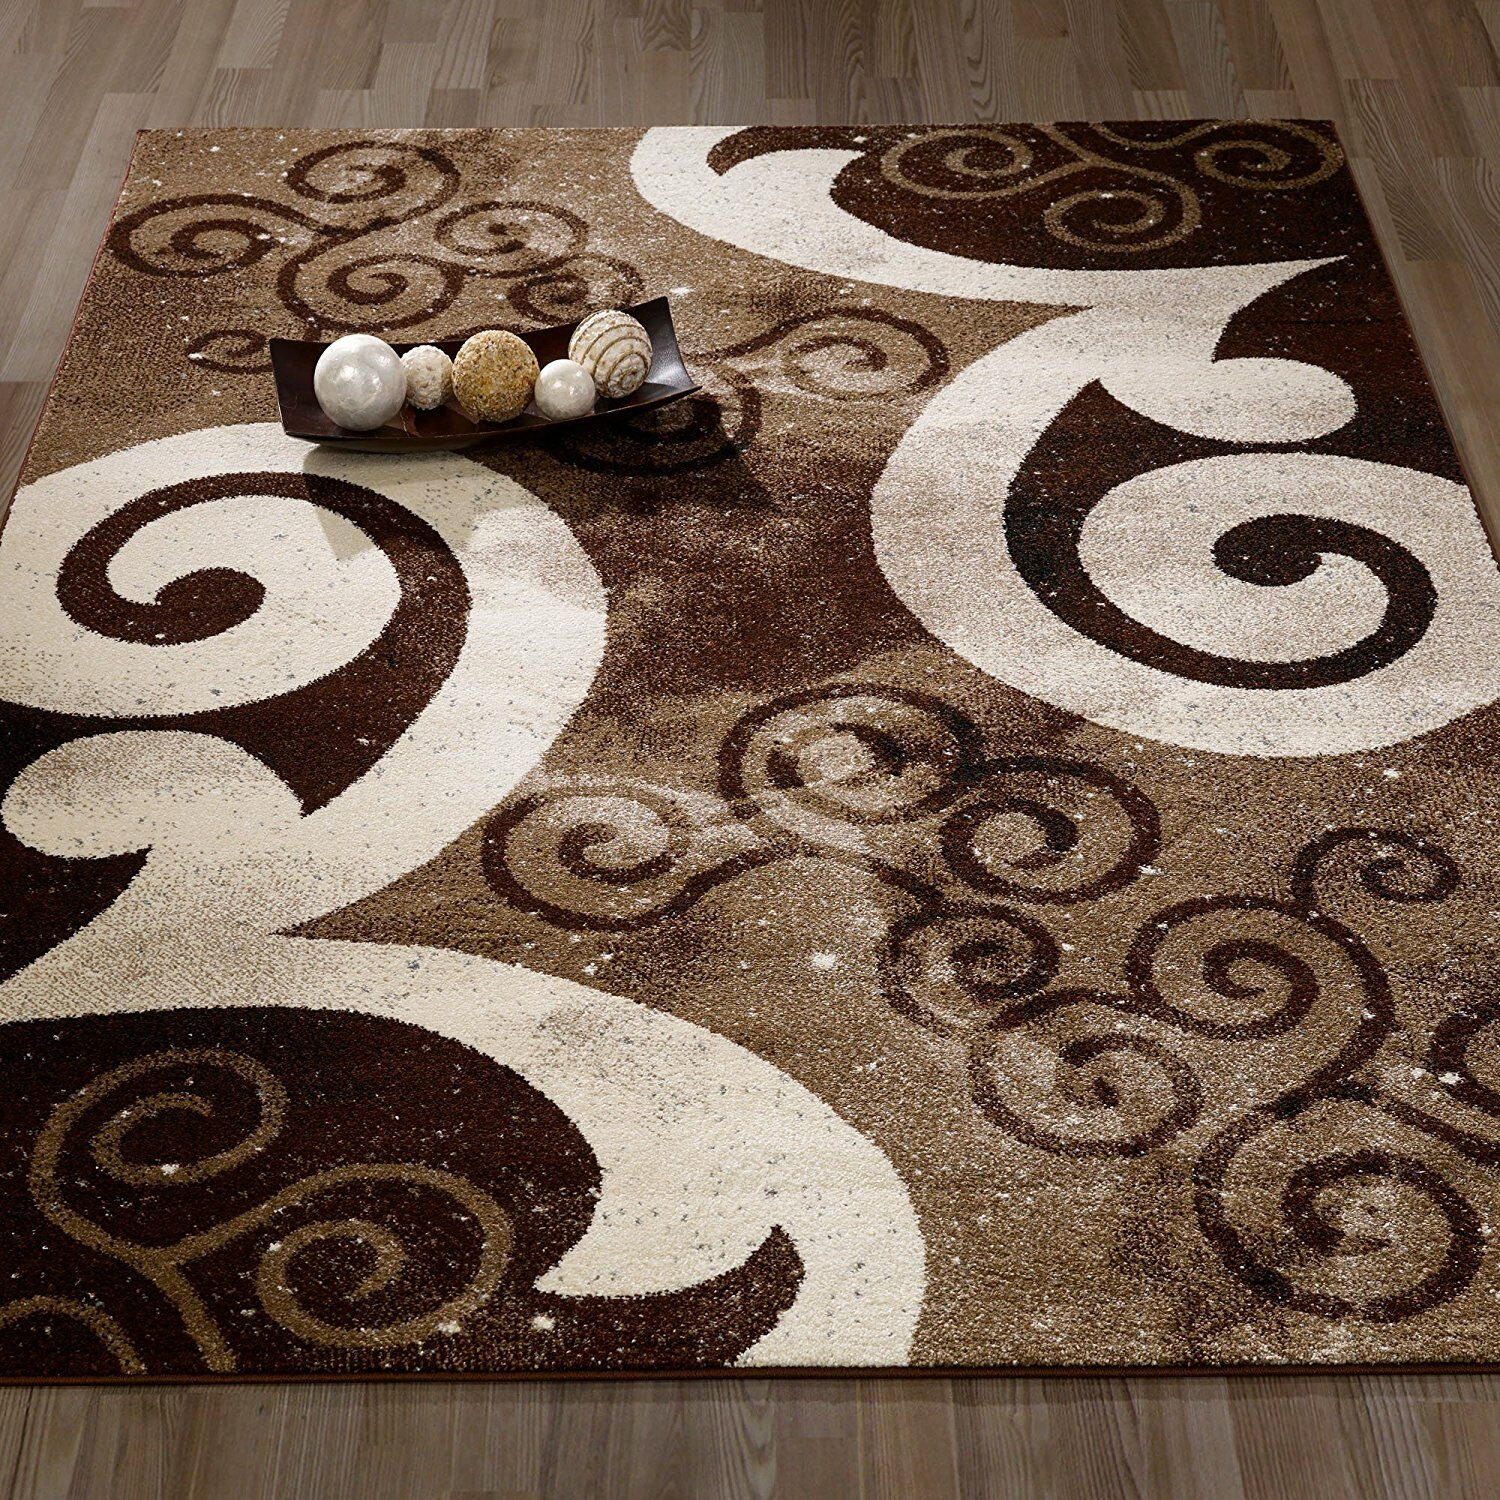 Thrower Abstract/Swirl Brown/Beige Area Rug